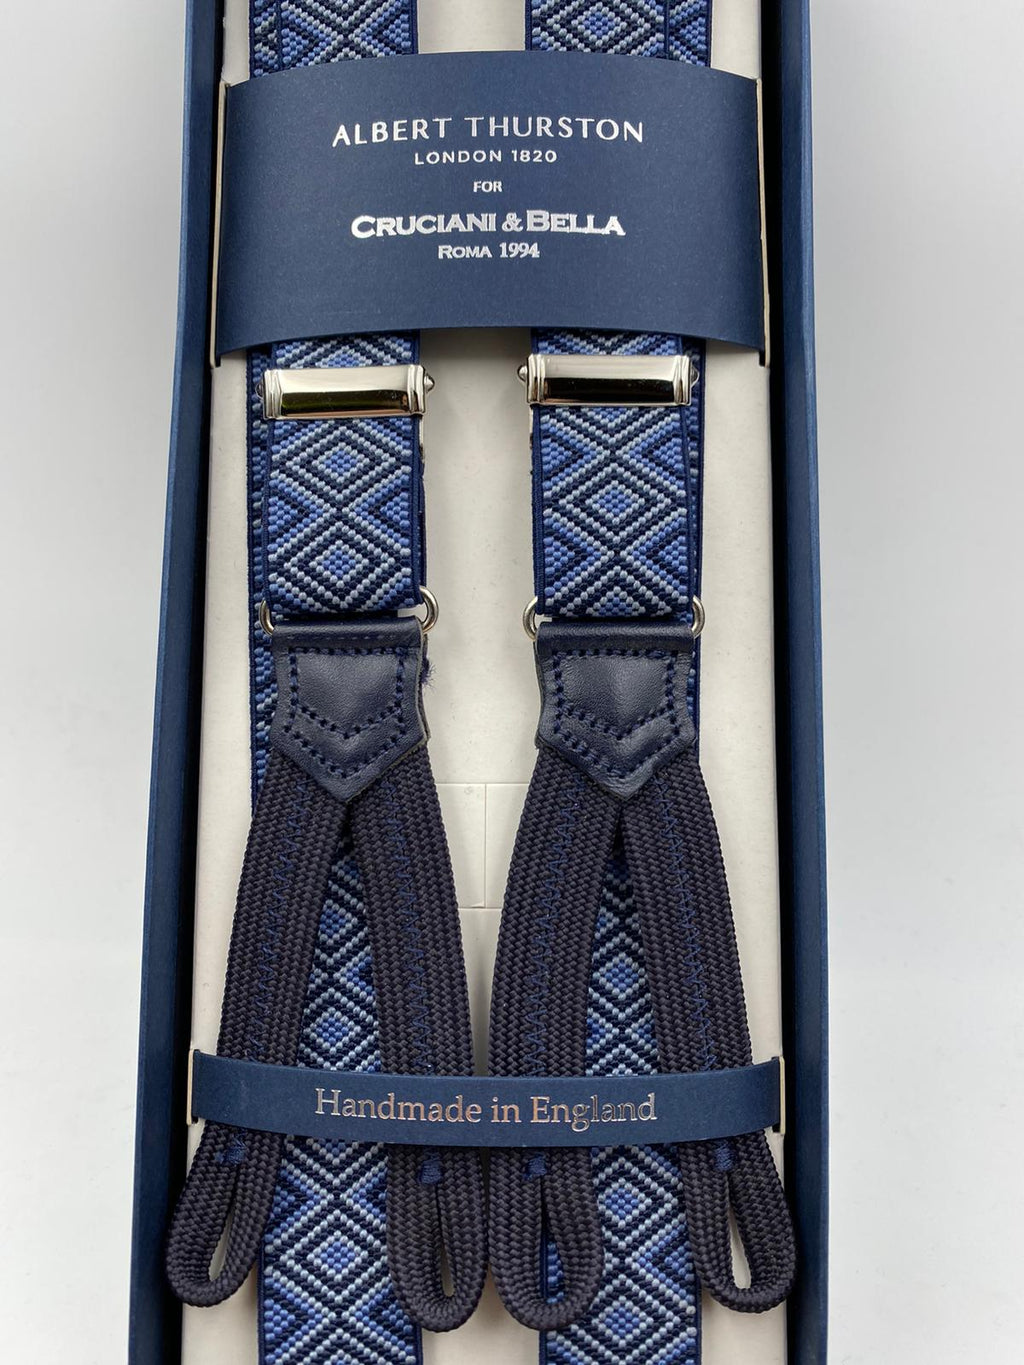 Albert Thurston for Cruciani & Bella Made in England Adjustable Sizing 25 mm elastic braces Blue Optical Motif Braid ends Y-Shaped Nickel Fittings Size: L #4909